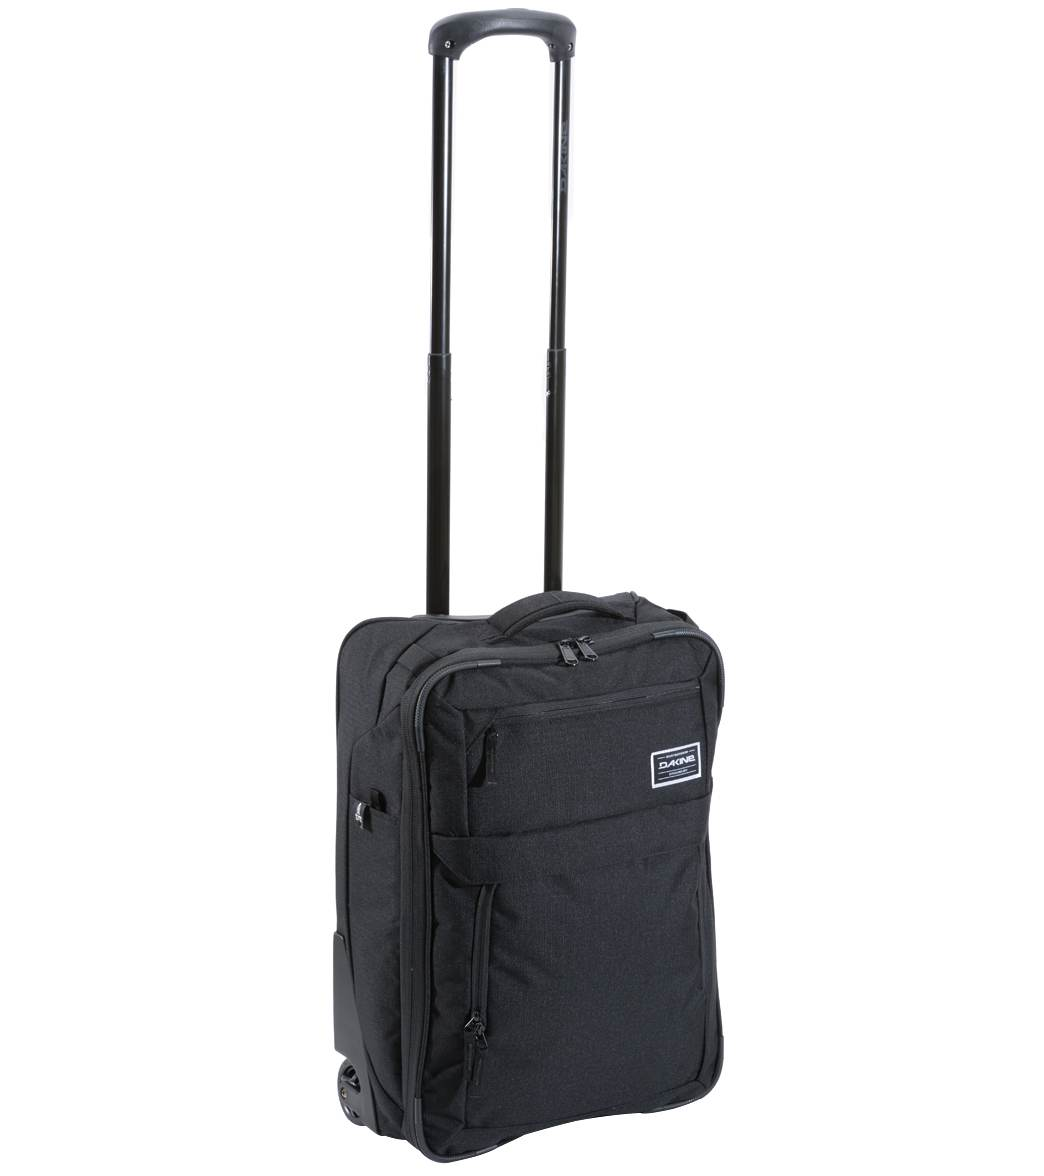 Dakine Women s Carry On Roller 40L Luggage at SwimOutlet.com - Free Shipping 1c351cfab4